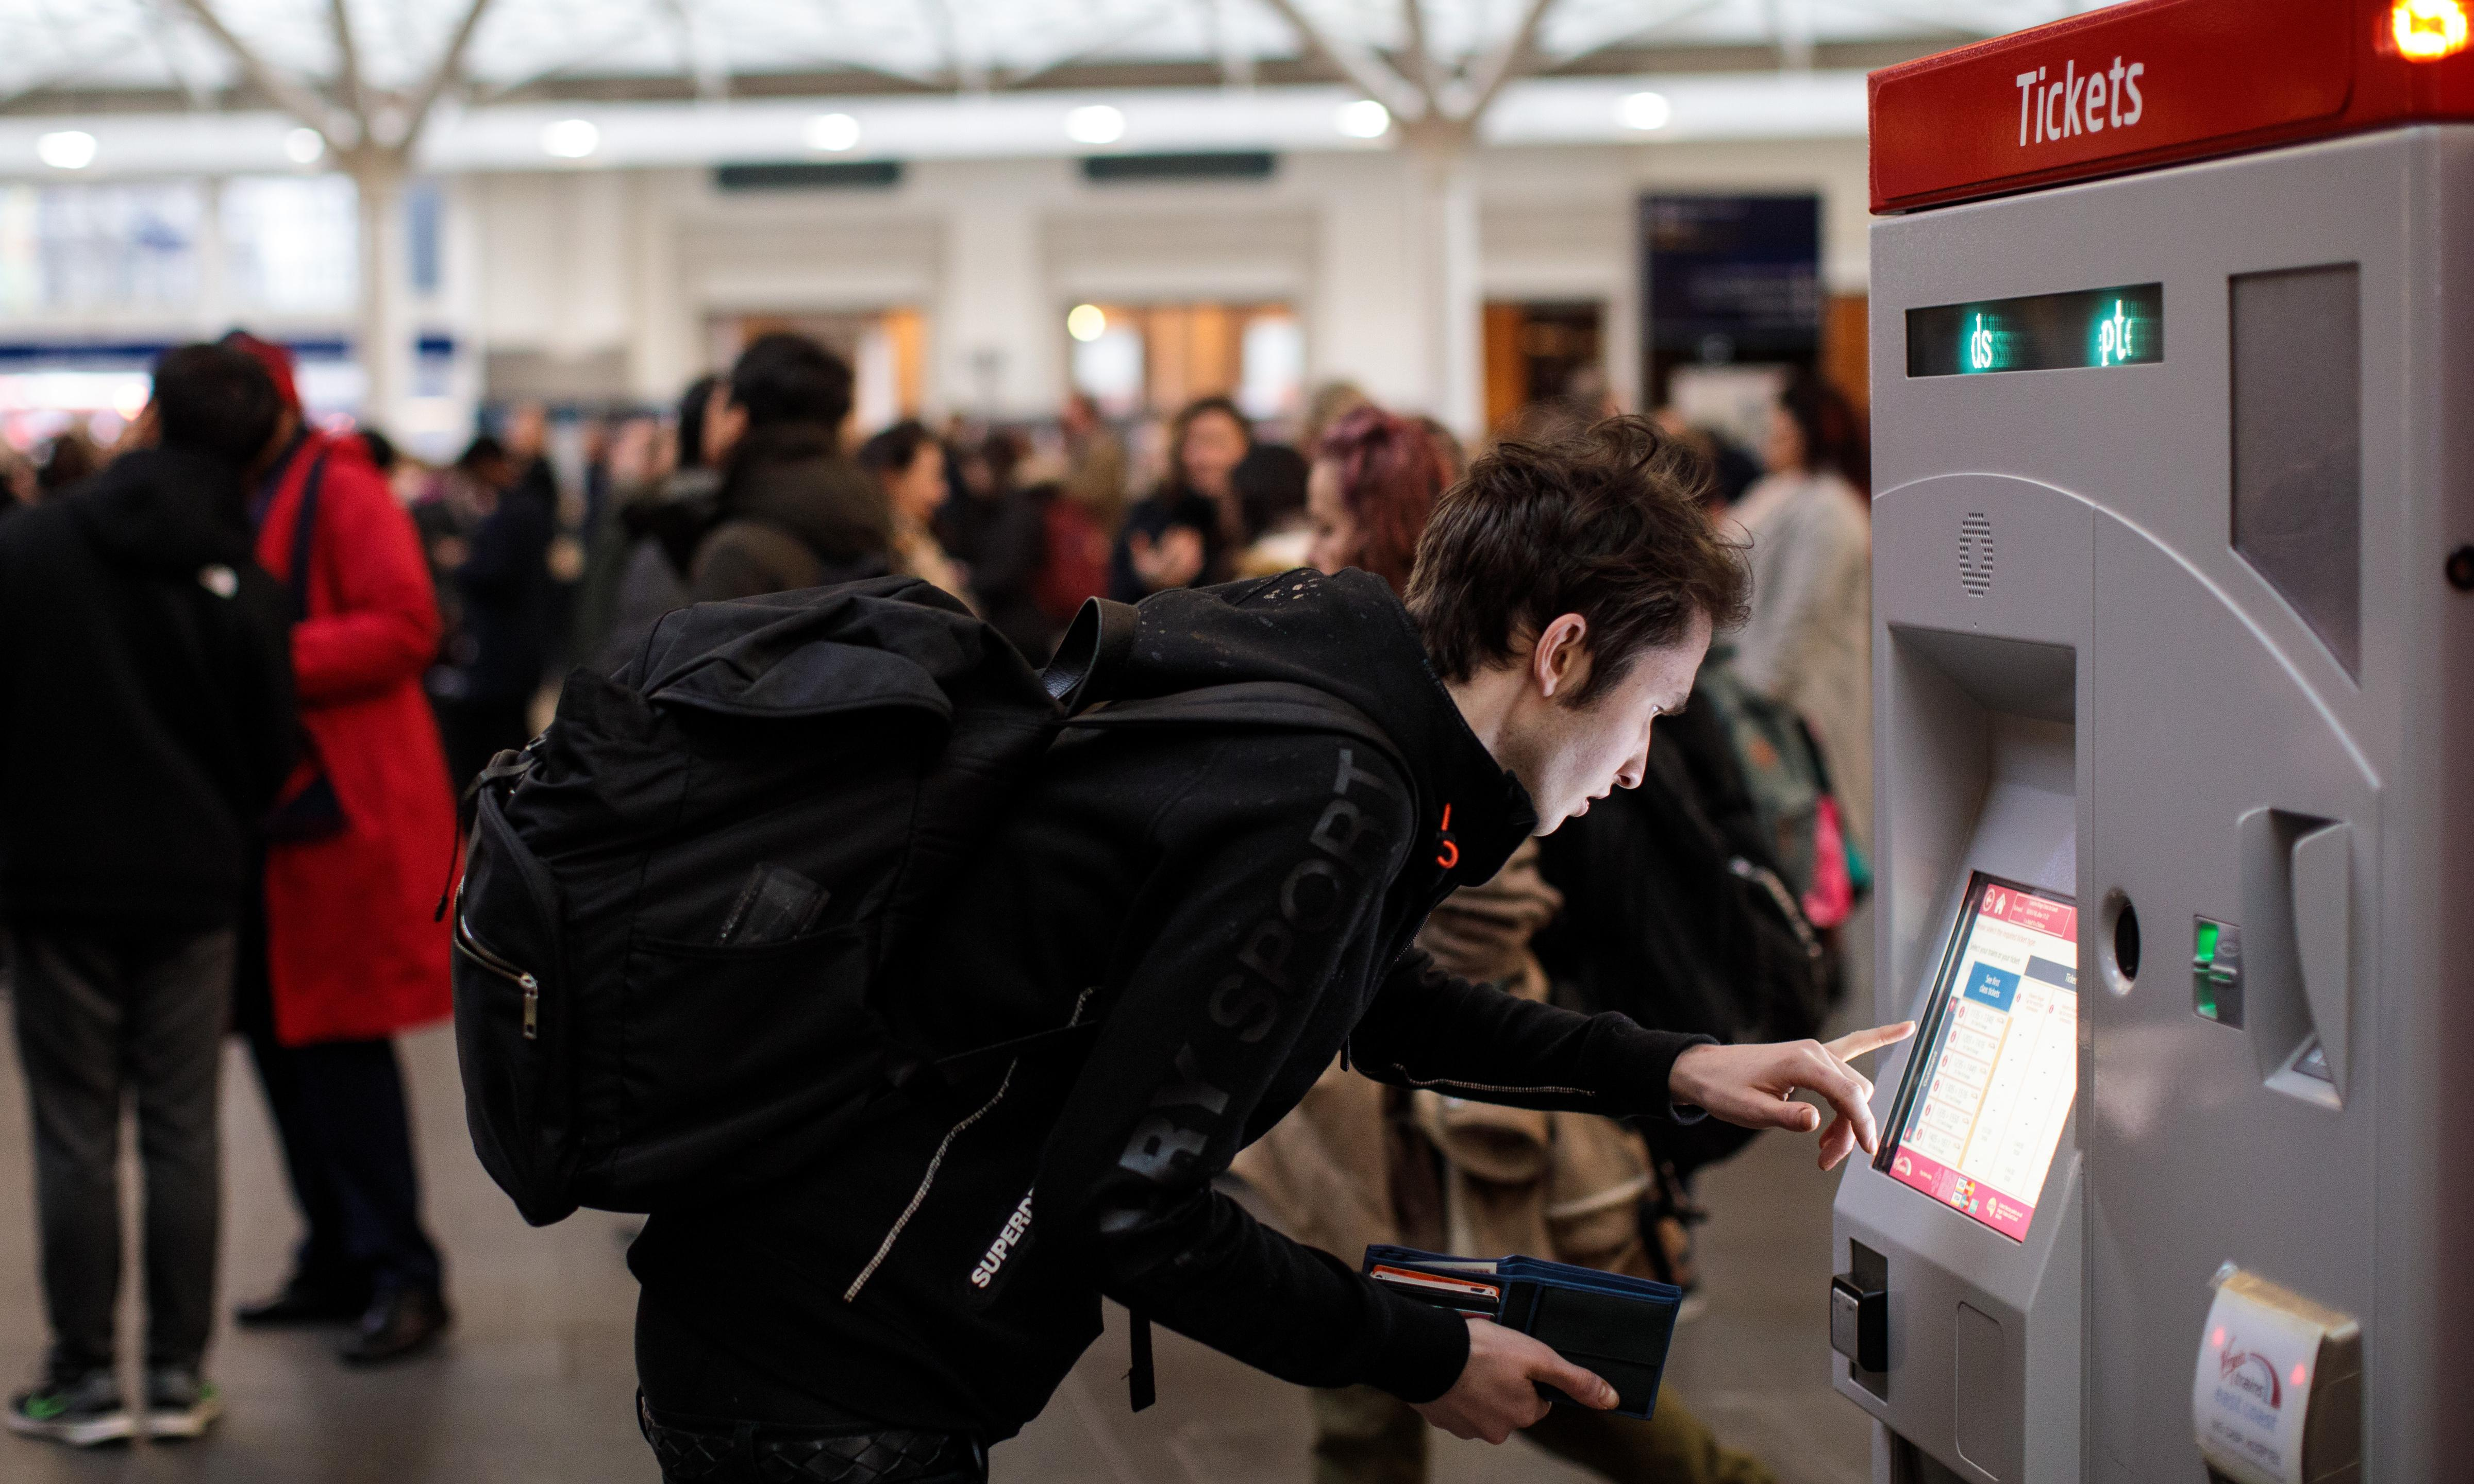 Travellers pay price as rail policy runs out of control